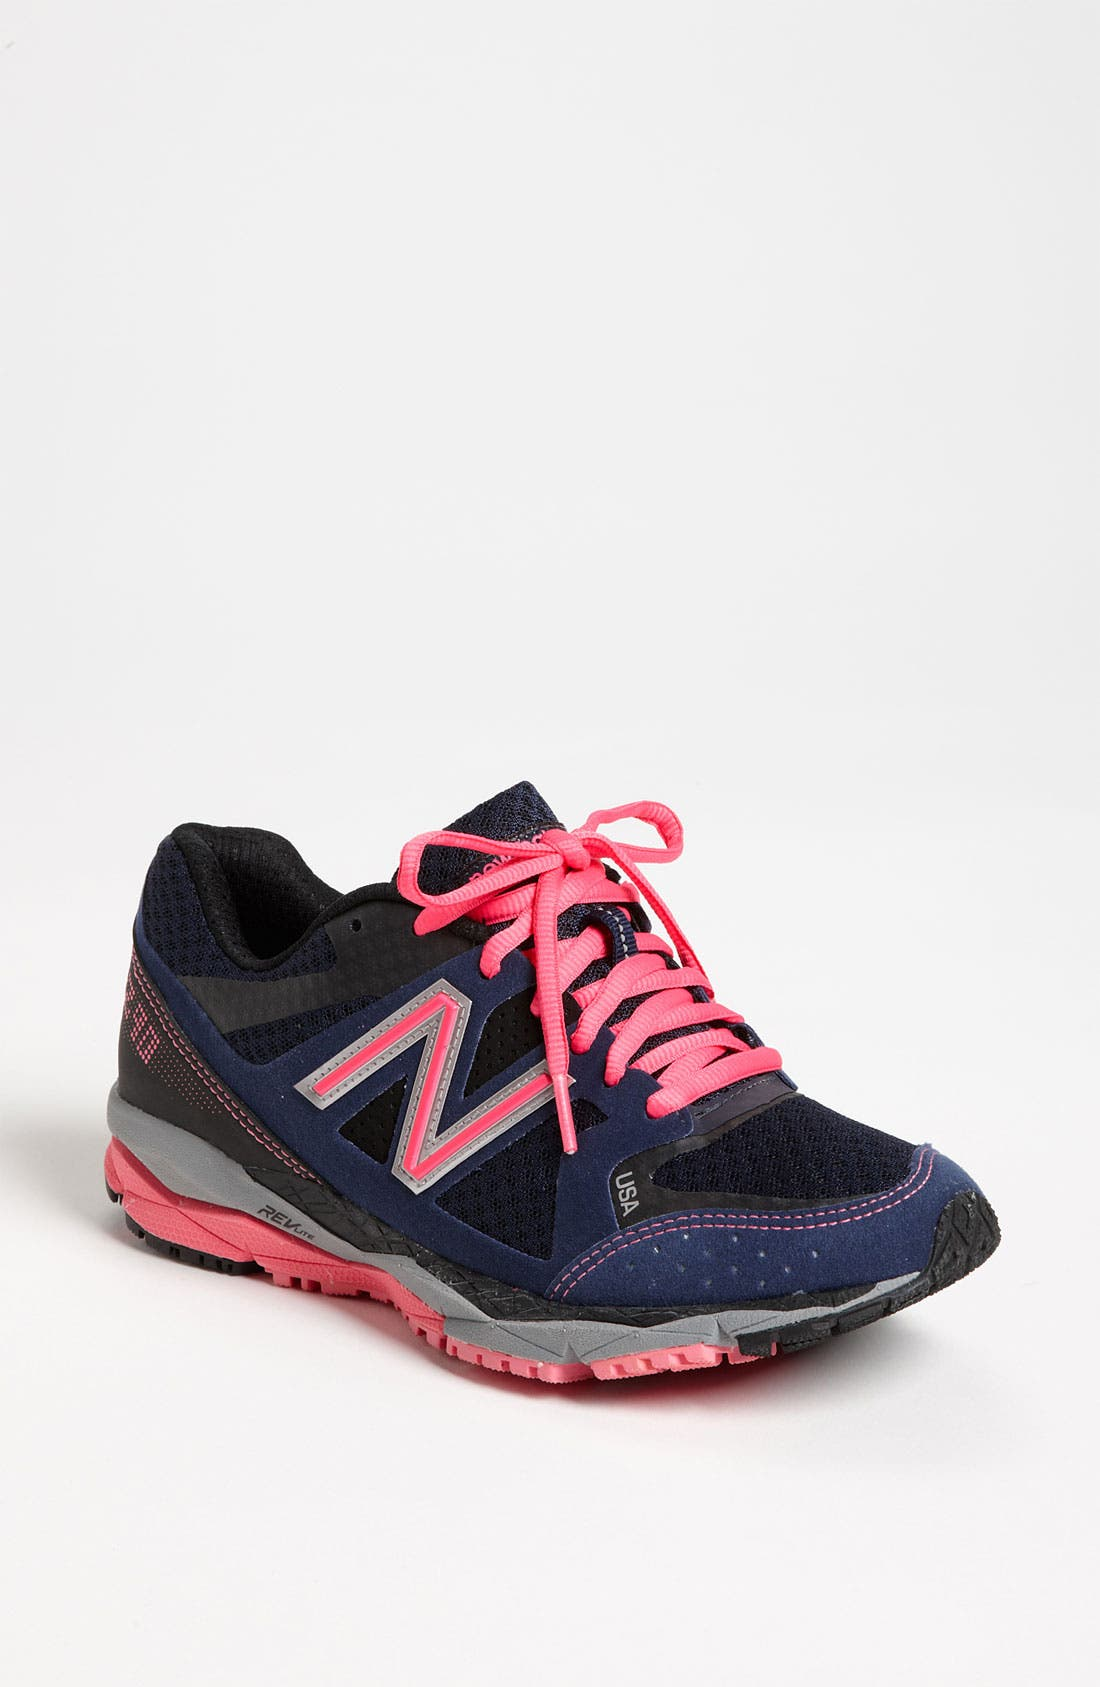 Main Image - New Balance '1290' Running Shoe (Women)